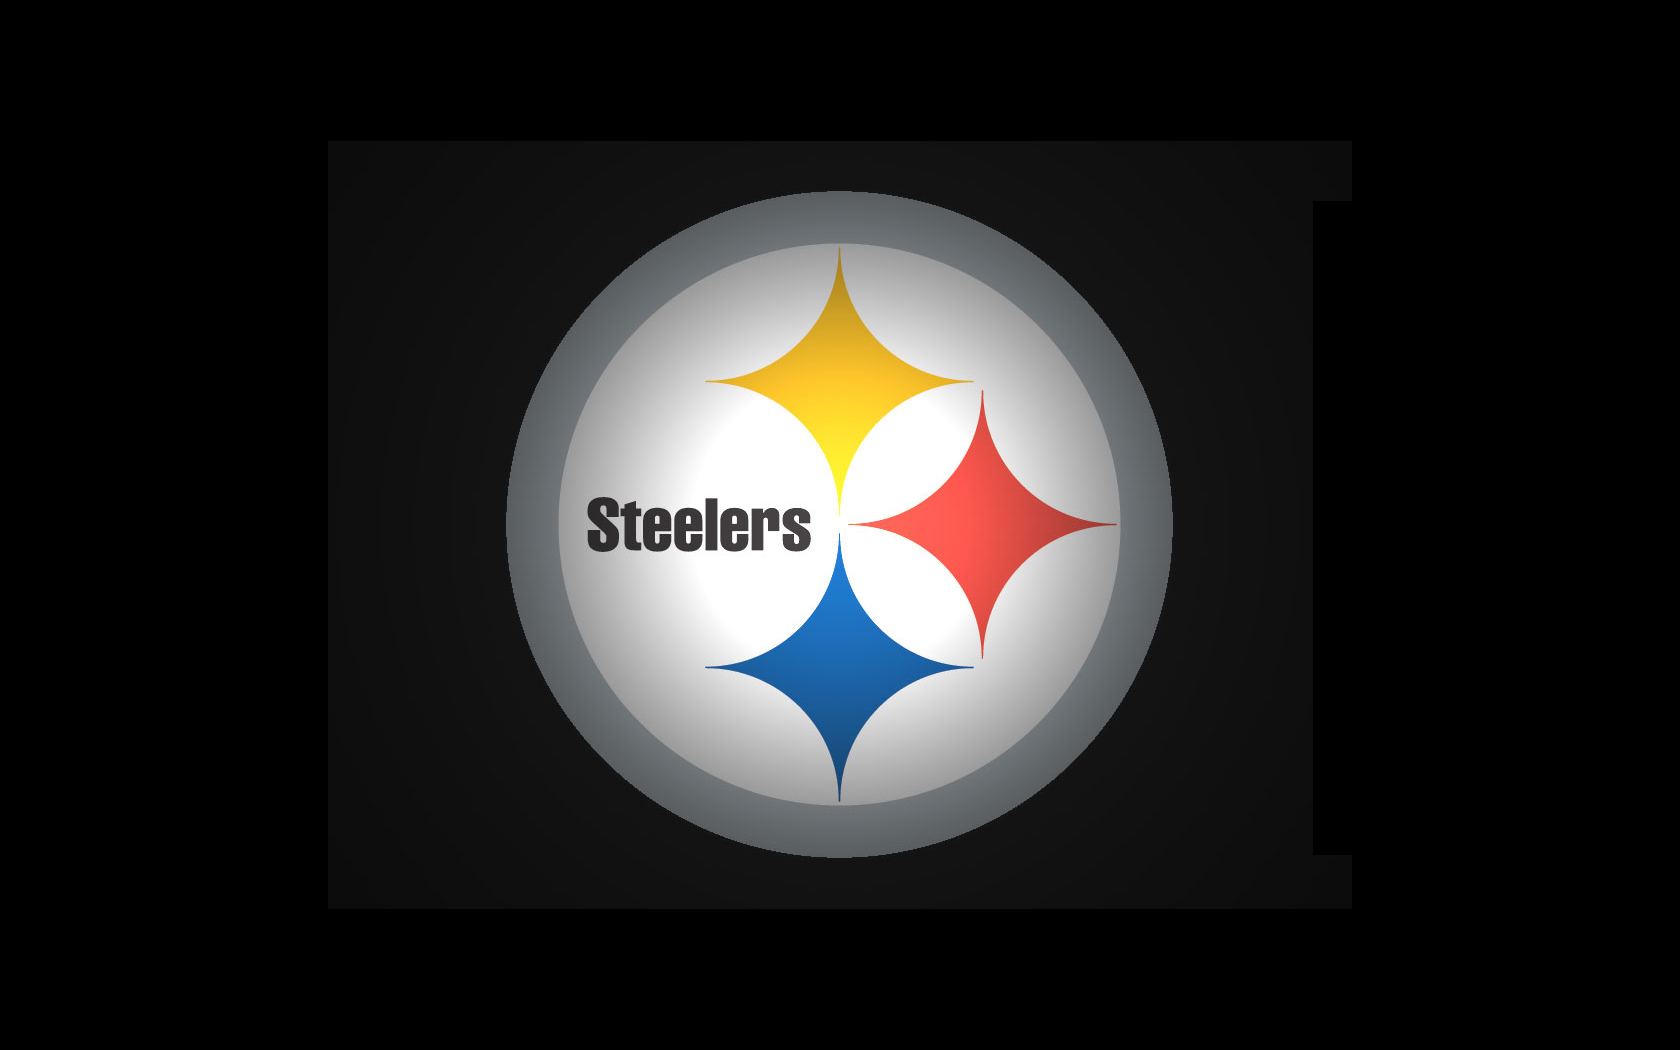 New Pittsburgh Steelers wallpaper background Pittsburgh Steelers 1680x1050